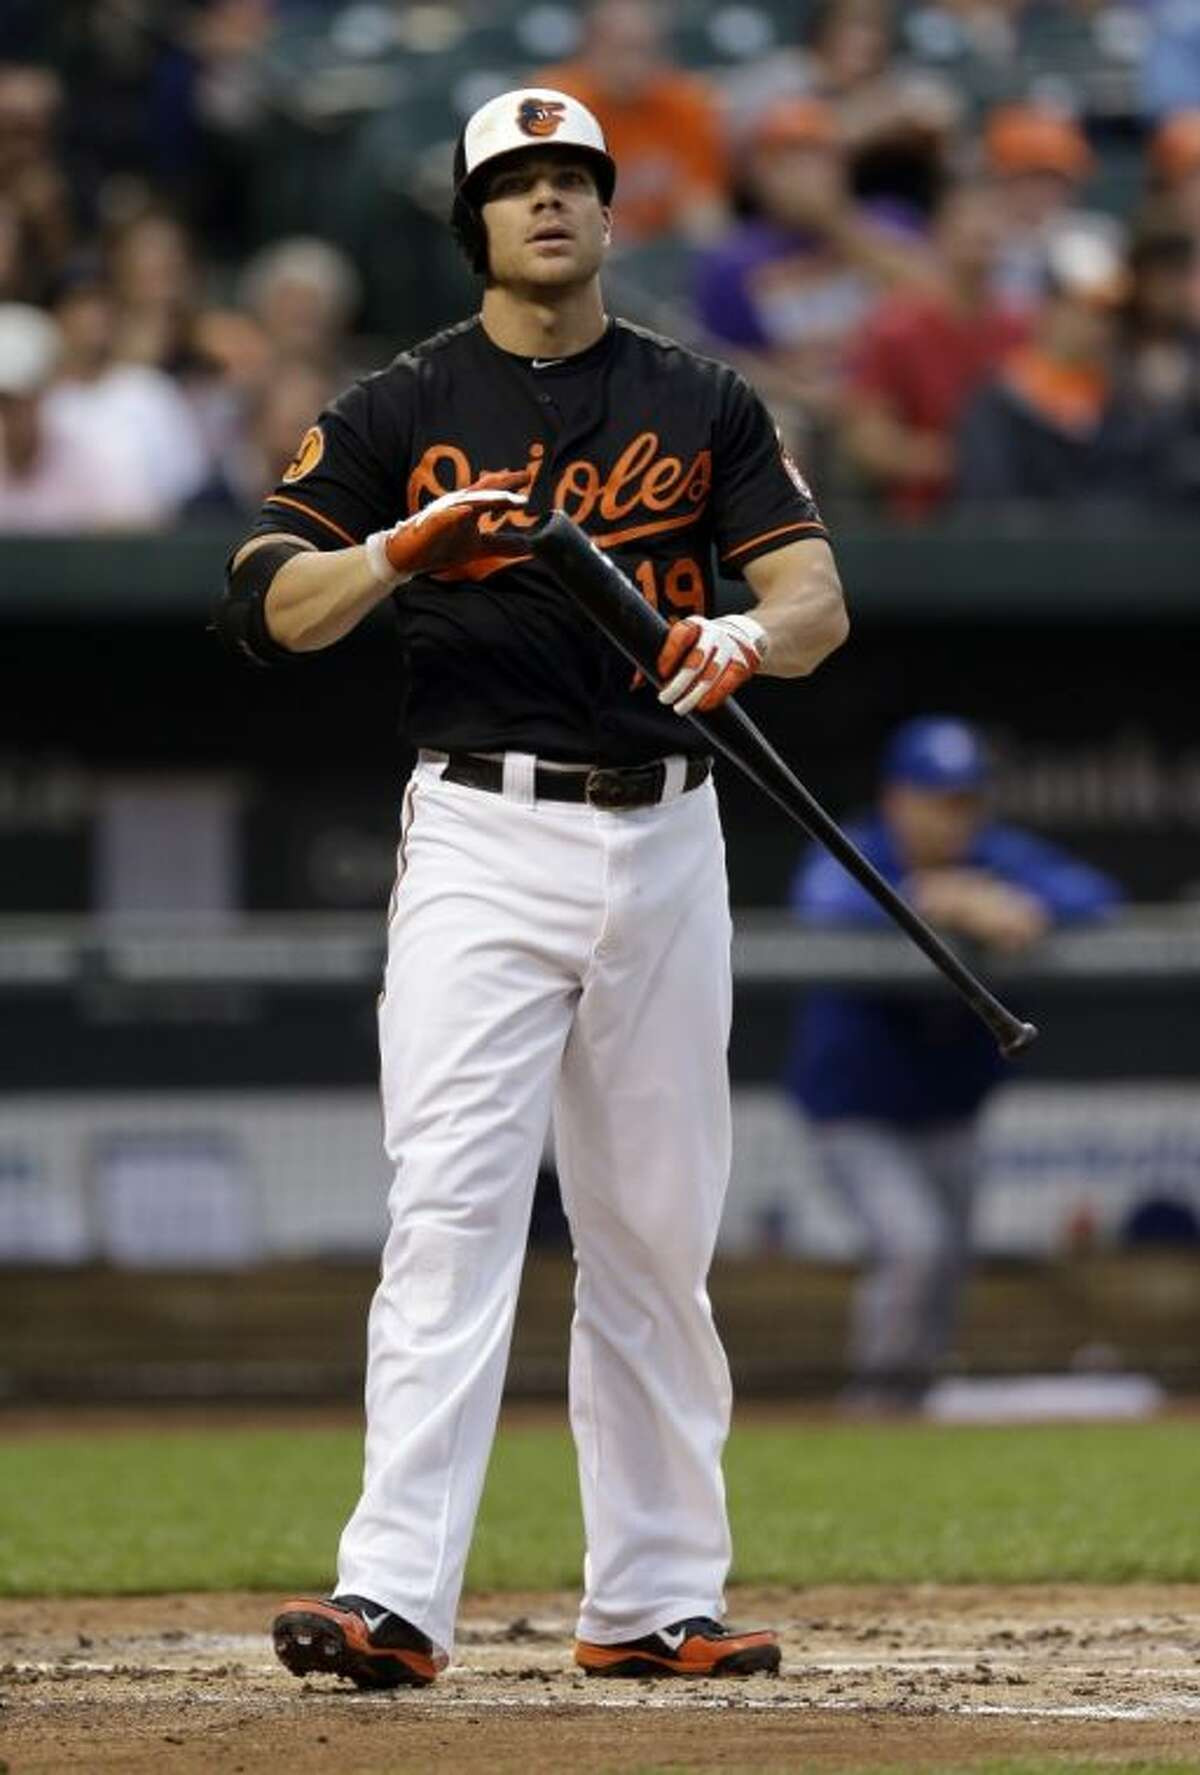 The Baltimore Orioles' Chris Davis leads the majors in home runs with 36.